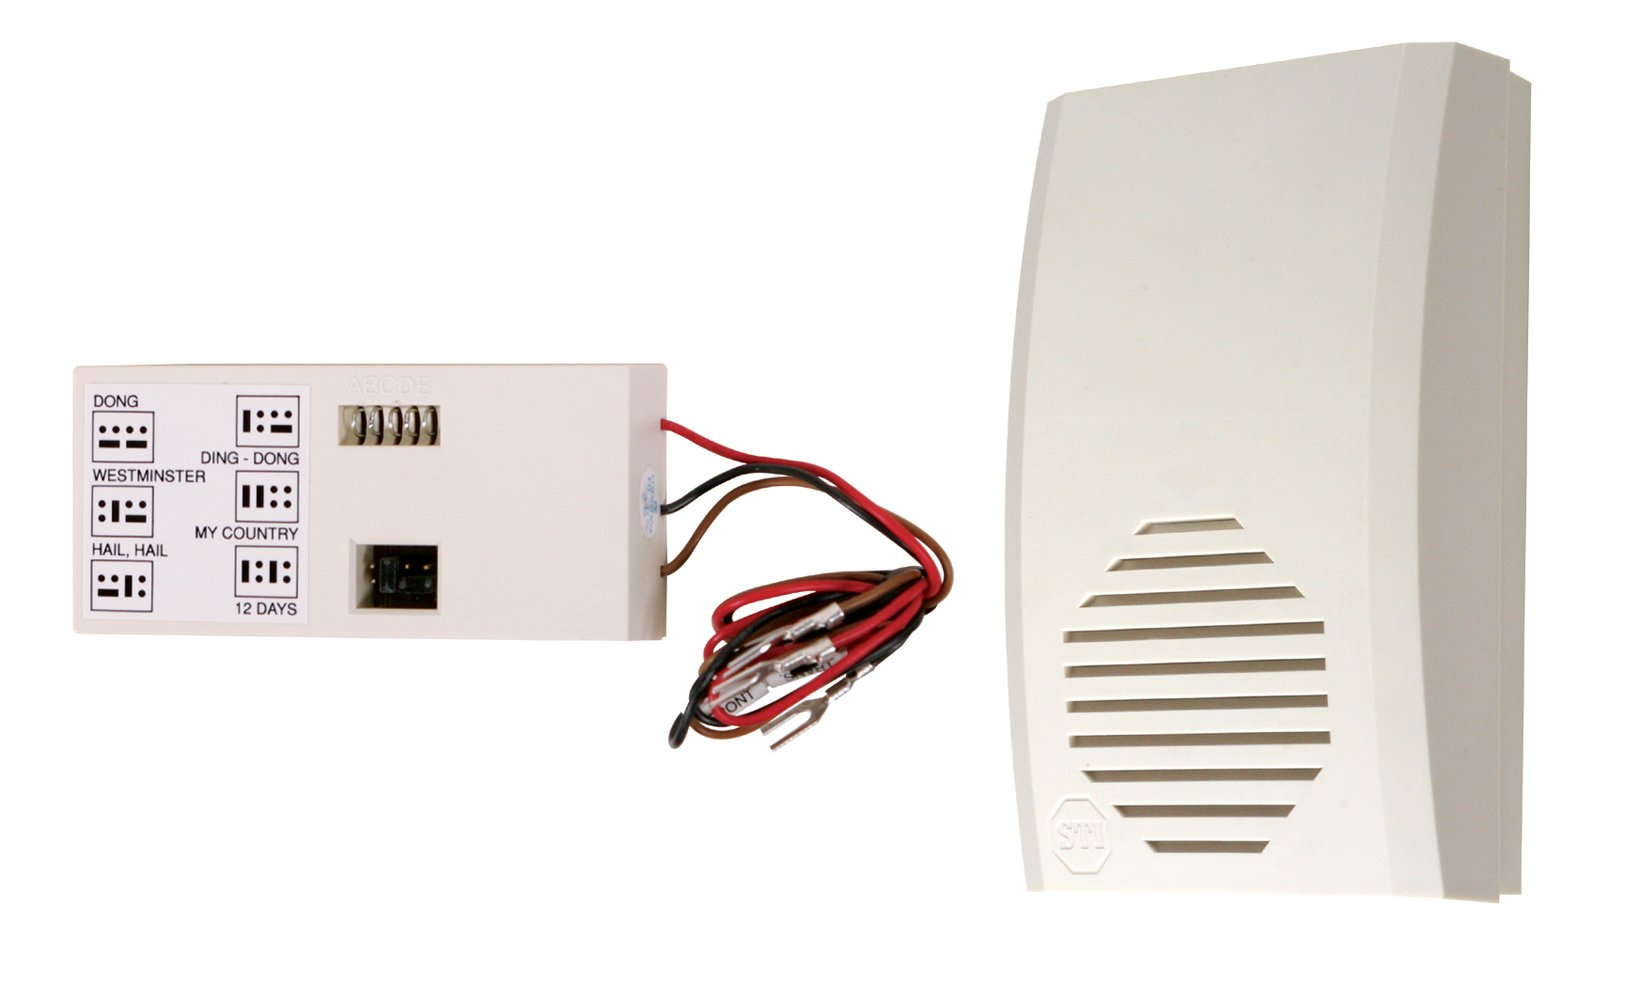 Safety Technology International STI-32000 Wireless Doorbell Extender, Extends Existing Doorbell to Hard-to-Hear Locations